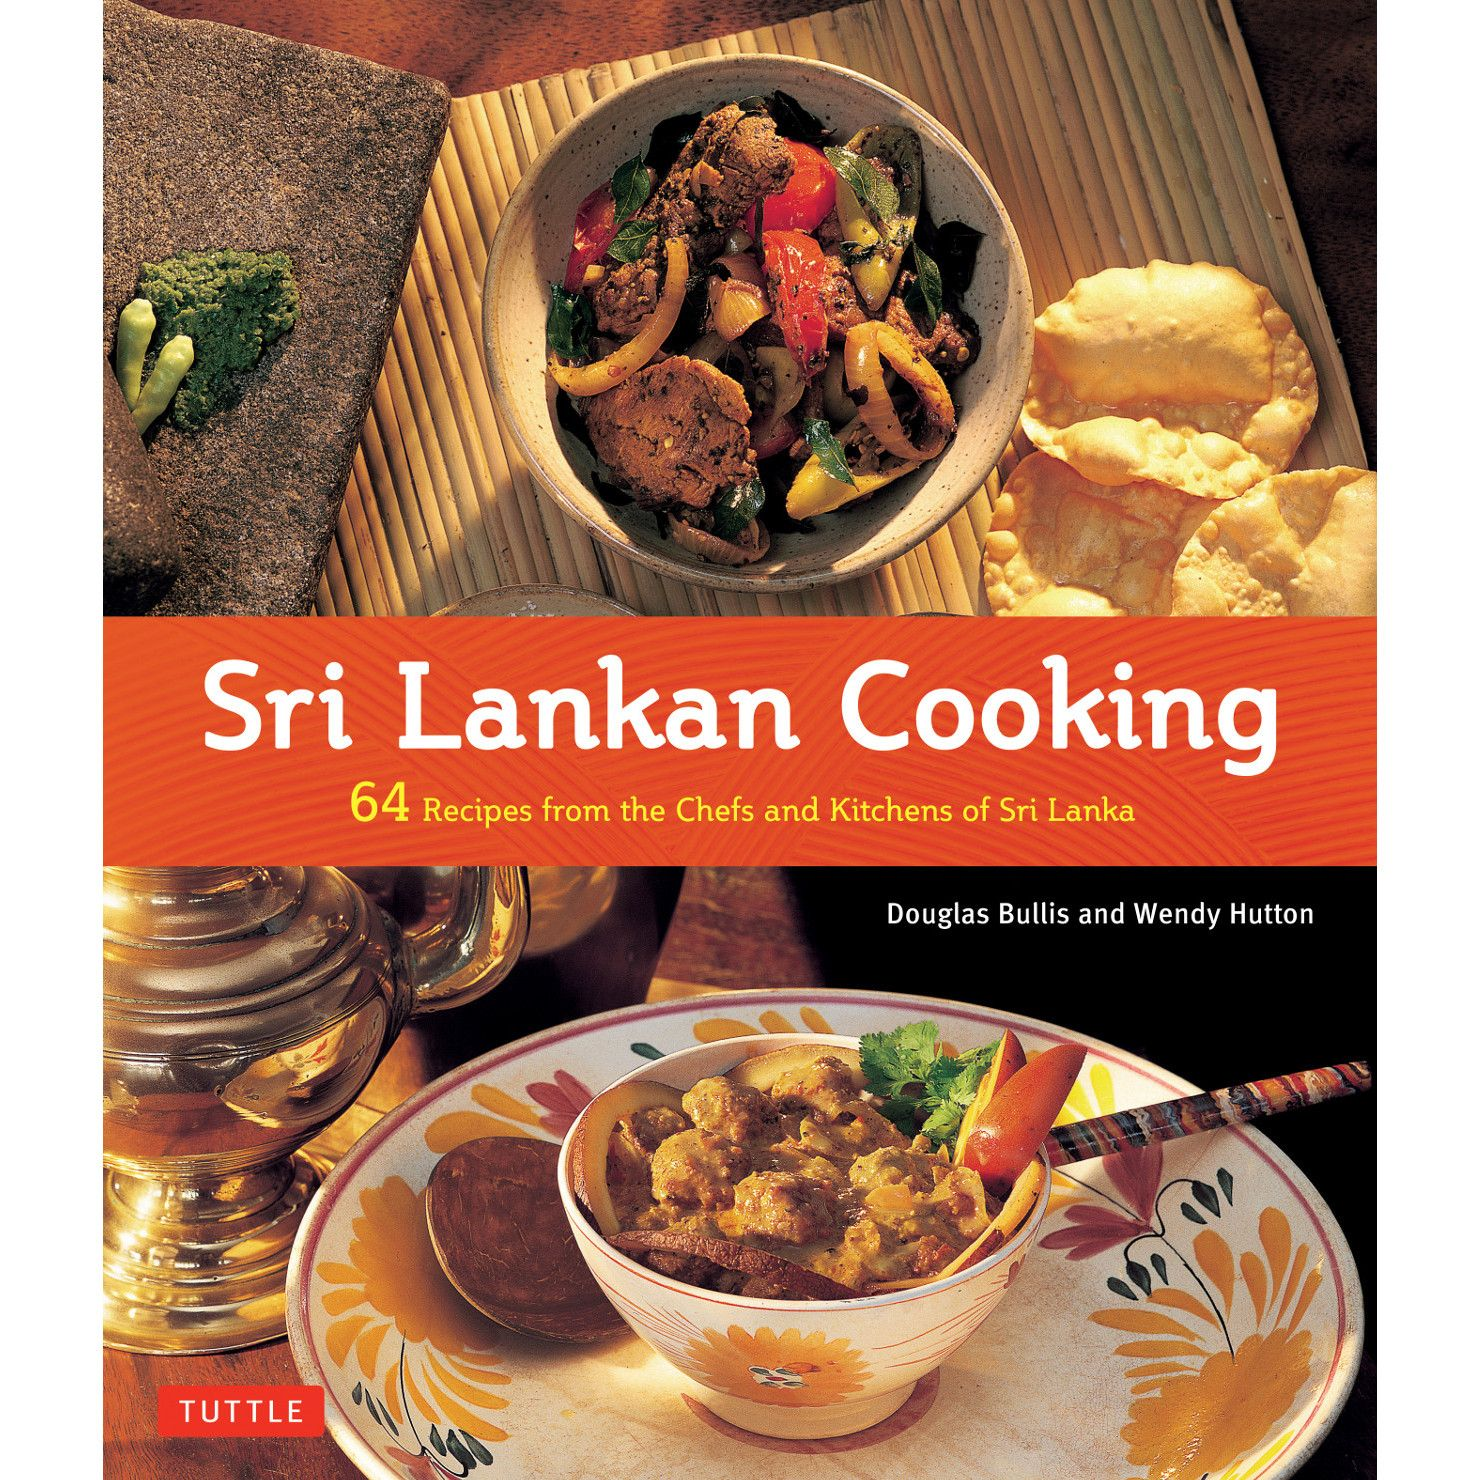 Sri Lanka , the fabled island of sapphires and rubies, is home to one of the most intriguing of Asian cuisines. Rarely found in restaurants outside the island itself, Sri Lankan fare is often mistaken for yet another Indian cuisine. To the culinary explorer, however, Sri Lankan food is as intriguing and unique as the many other customs of this island paradise.